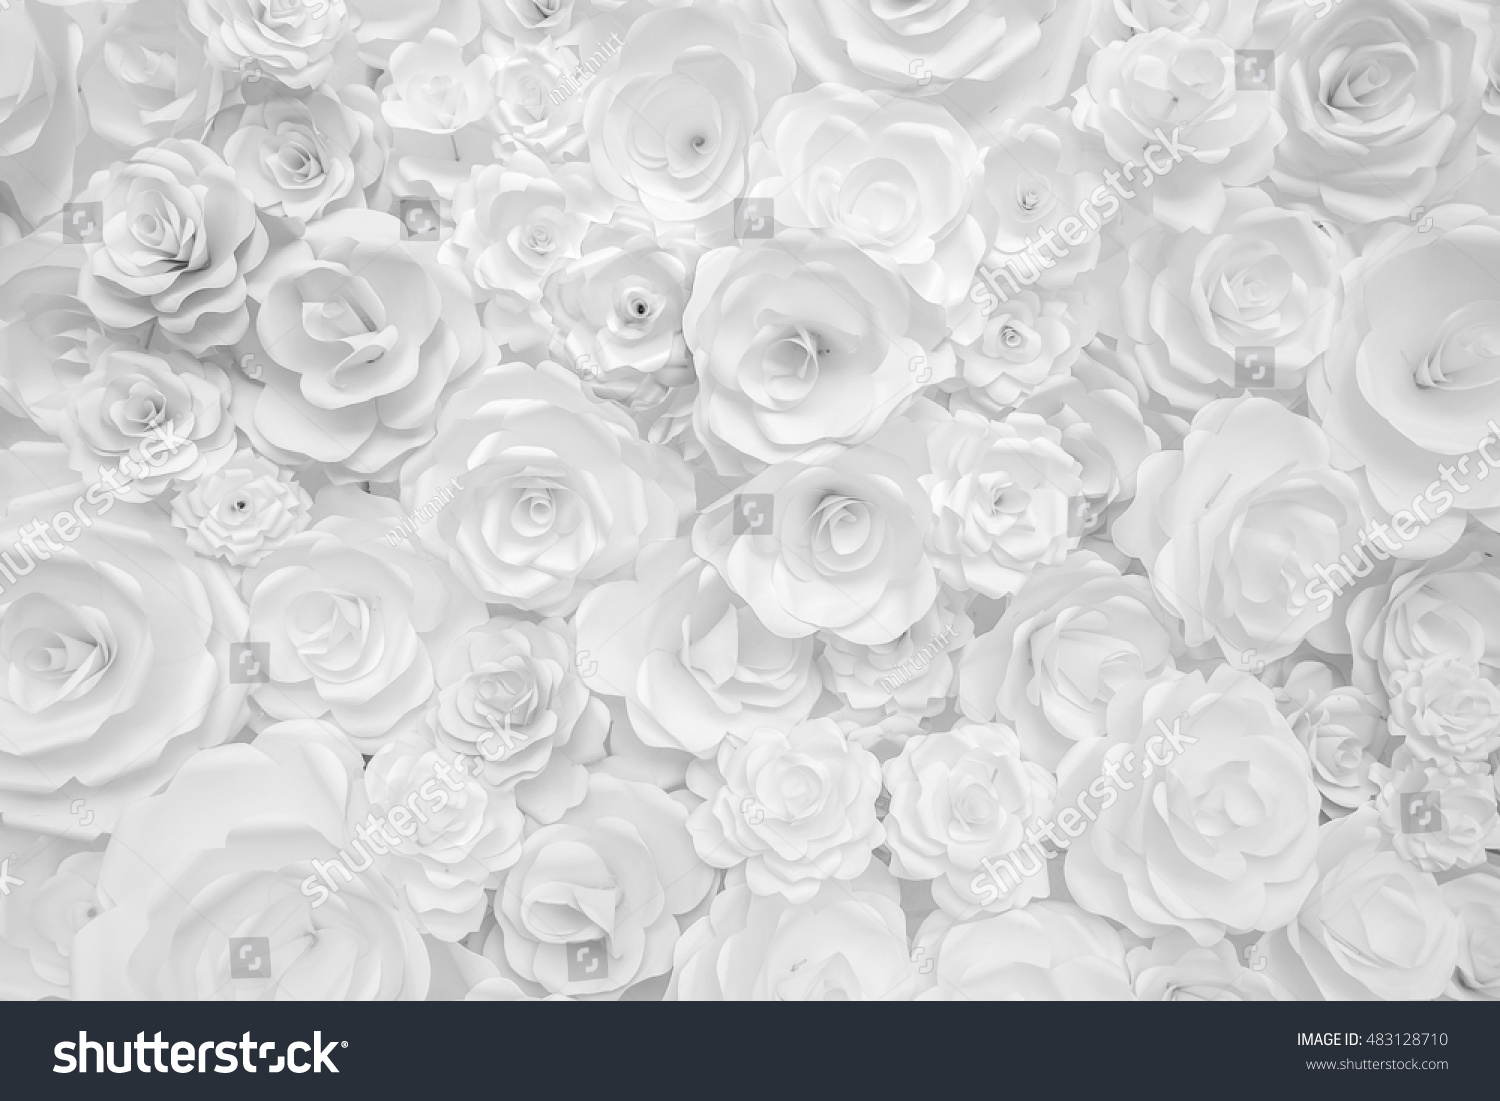 White paper flowers decorative background stock photo royalty free white paper flowers decorative background mightylinksfo